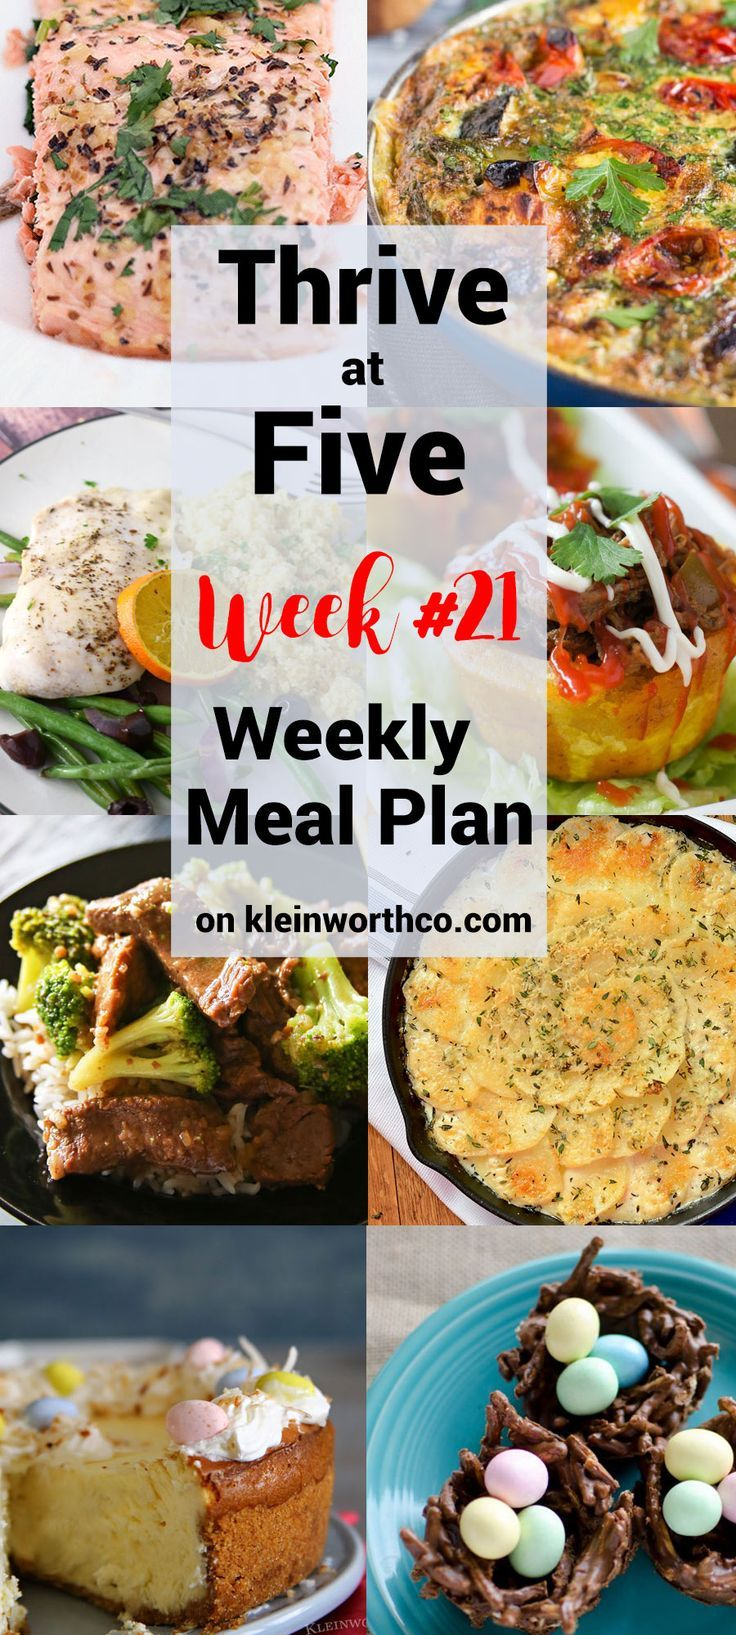 Thrive at Five Meal Plan Week 21 is here to help make mealtime easy. Quick Family Lunch and Simple Dinner Meal Ideas! Delicious! via @KleinworthCo